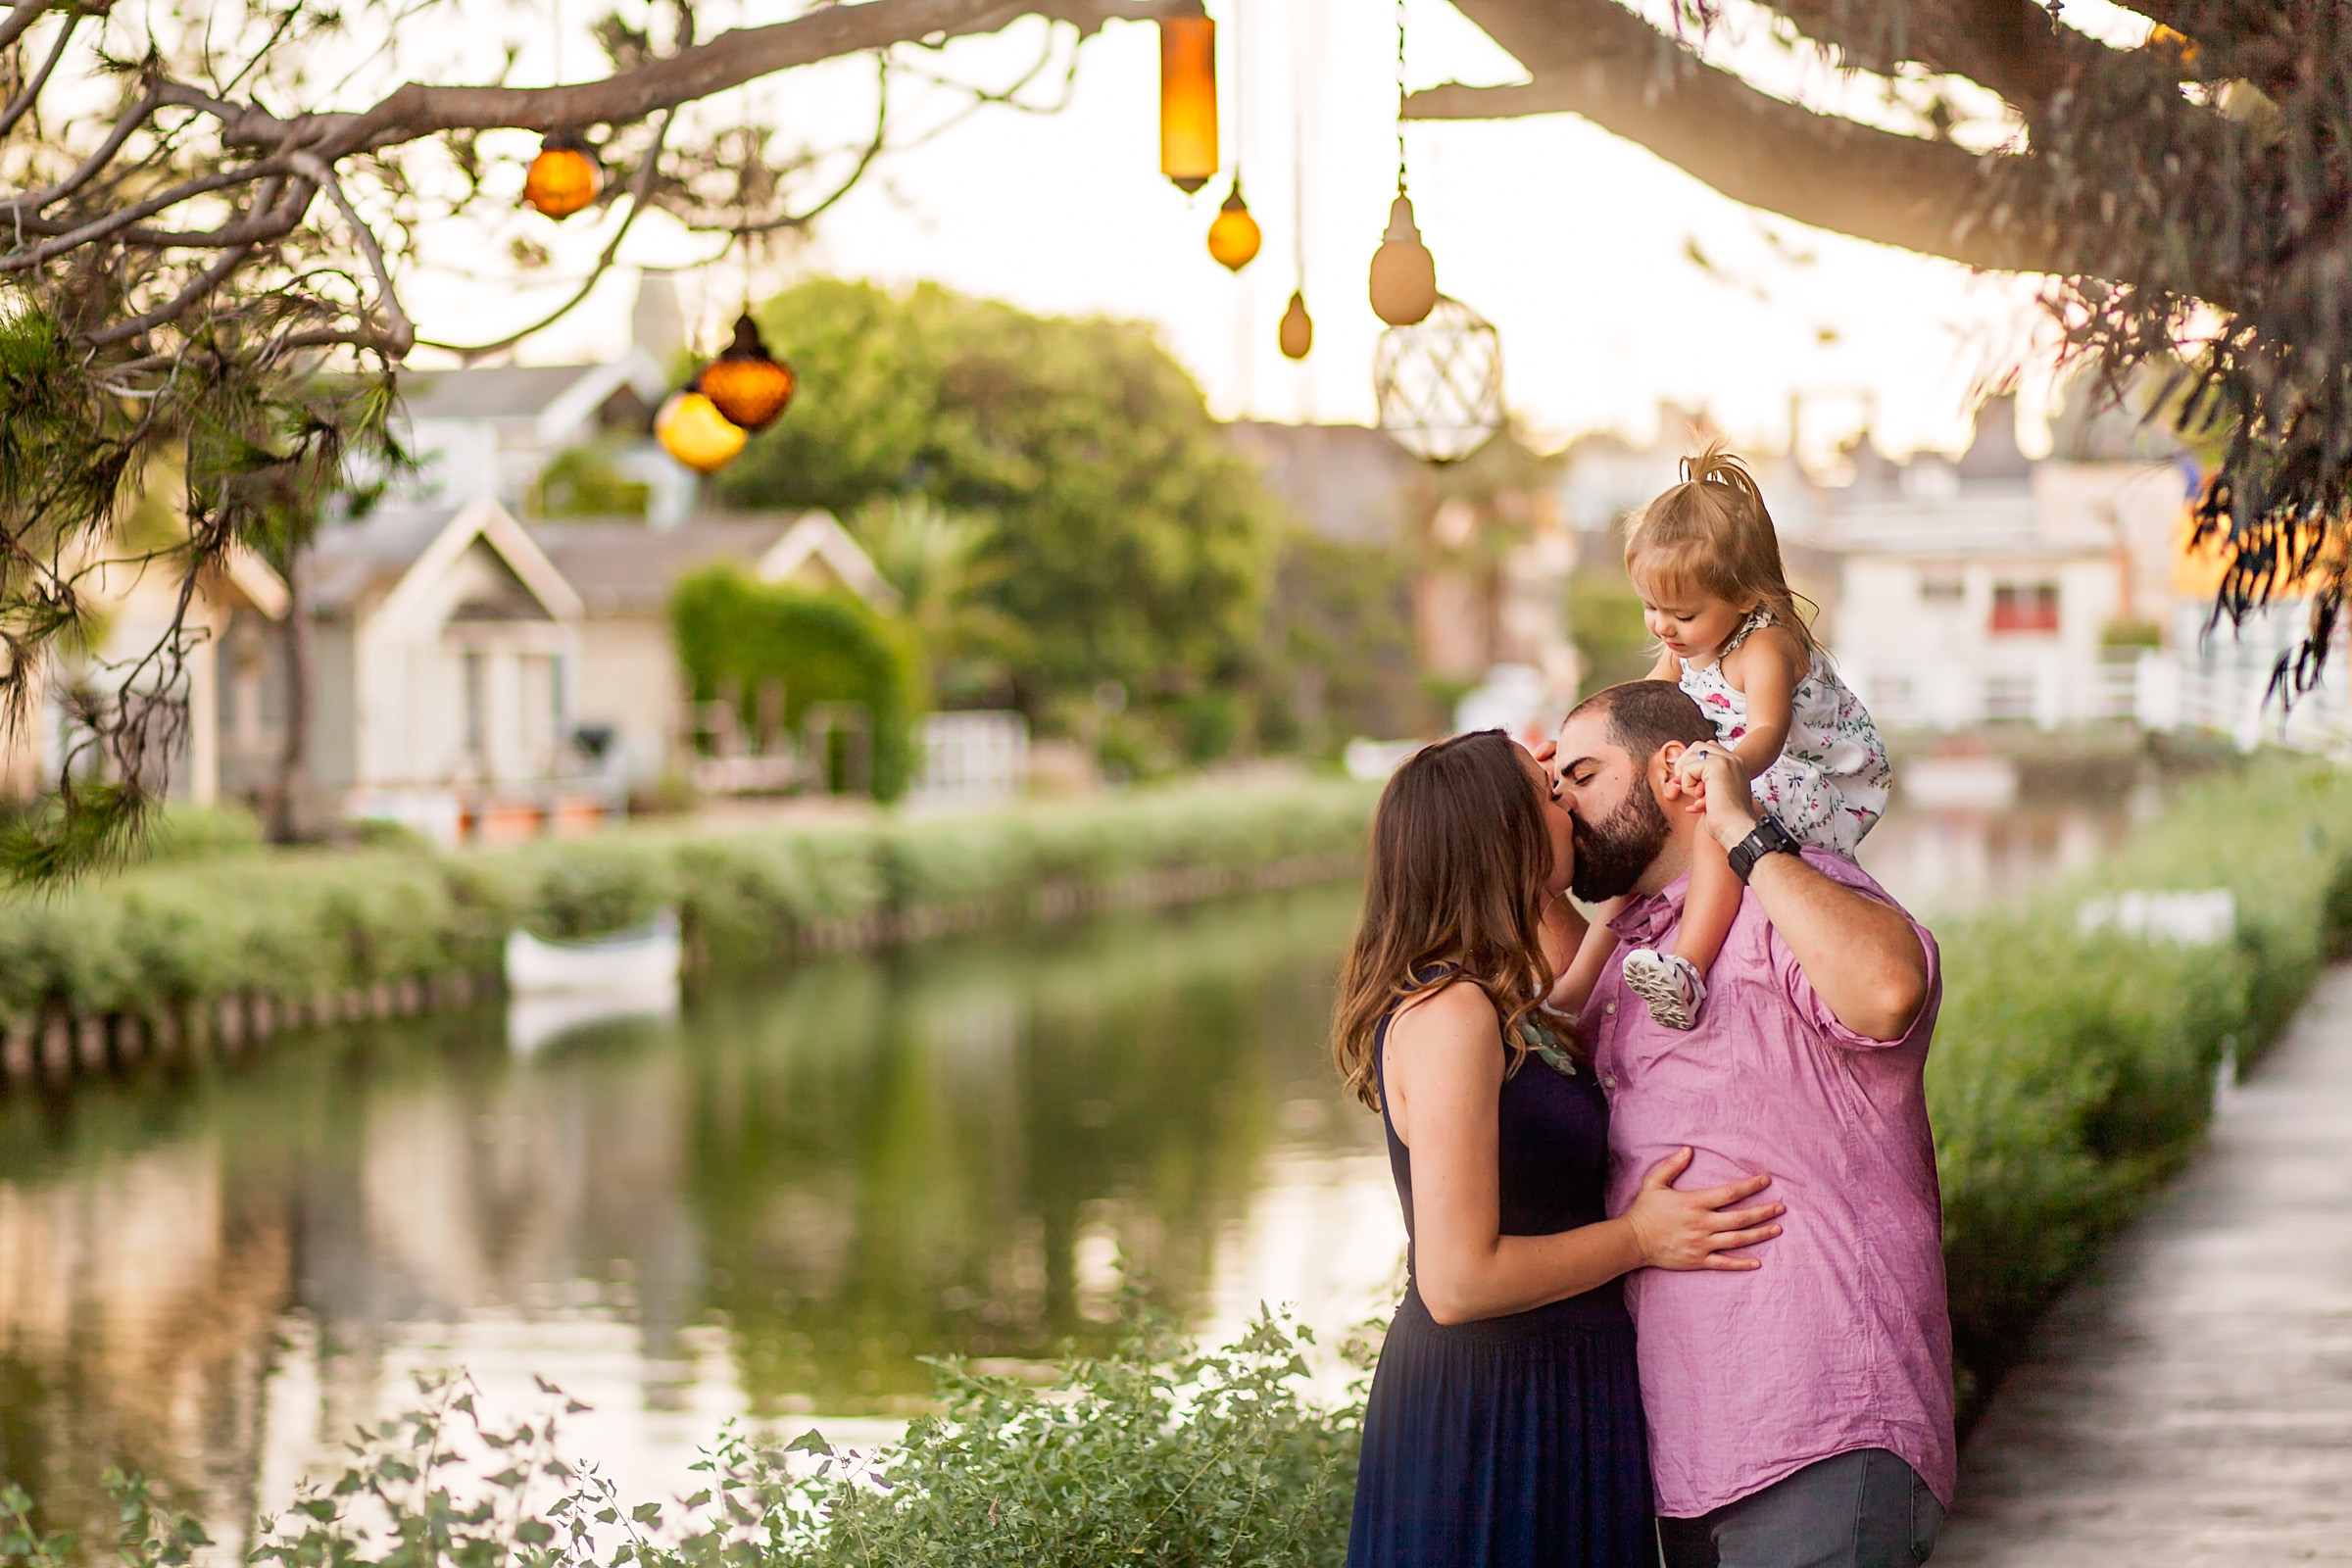 Family Portraits by Just Maggie Photography - Los Angeles Family Photographer